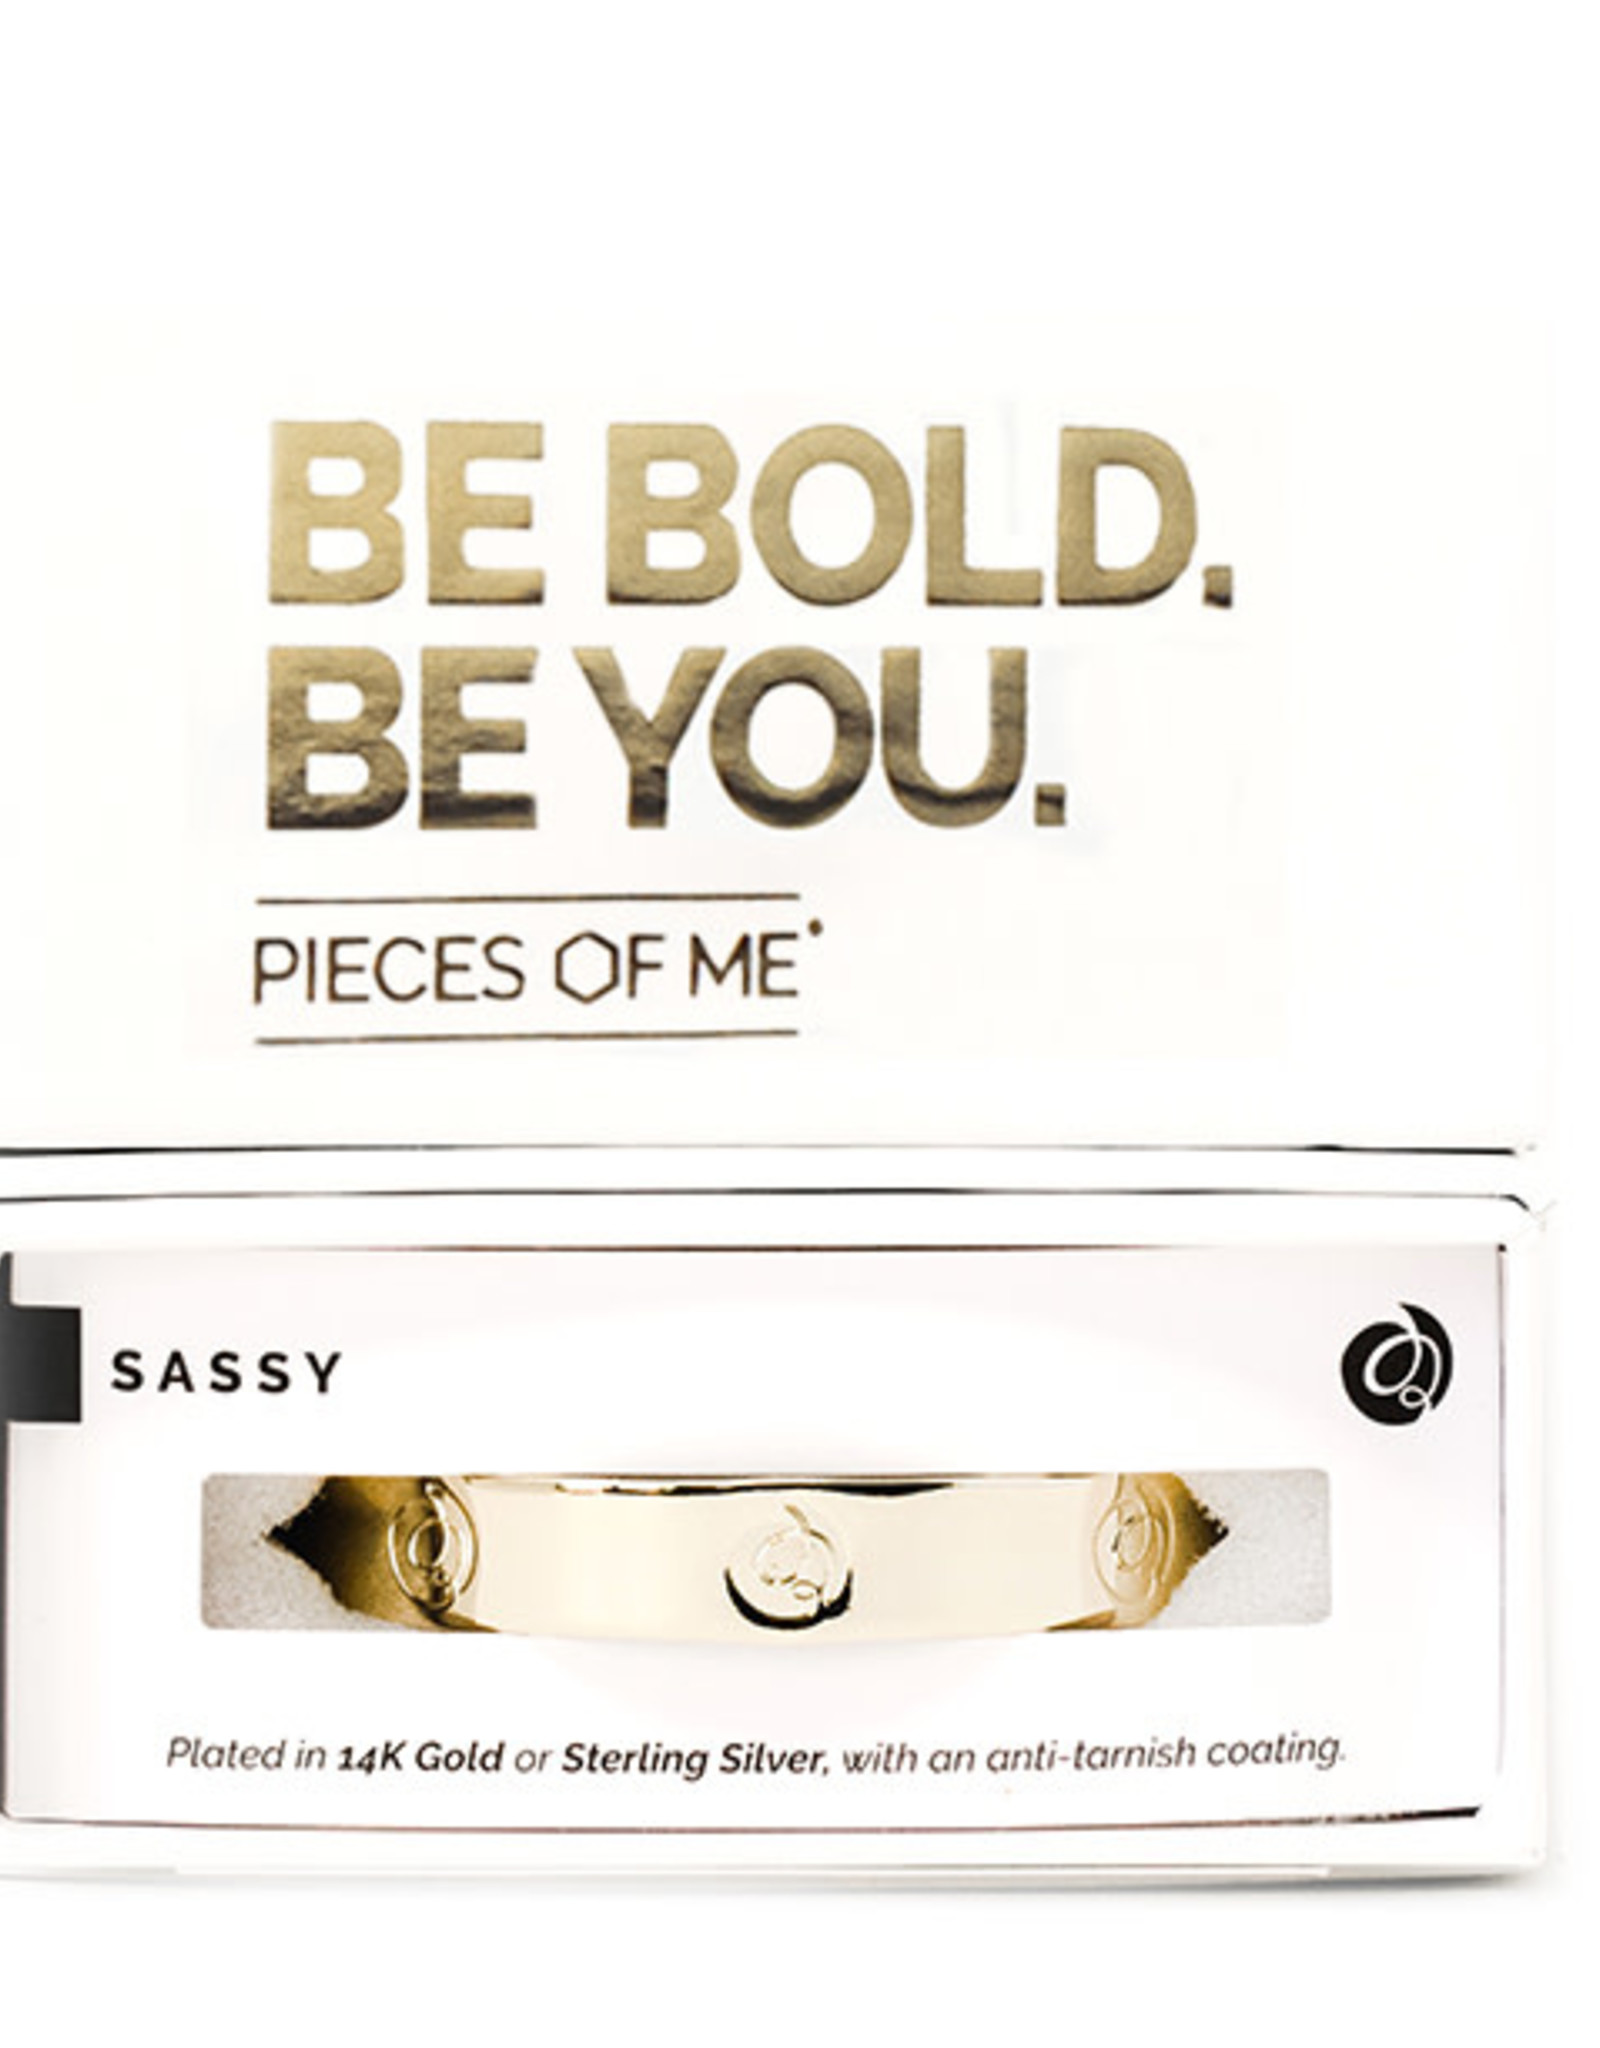 Pieces of Me Bracelet Sassy Gold